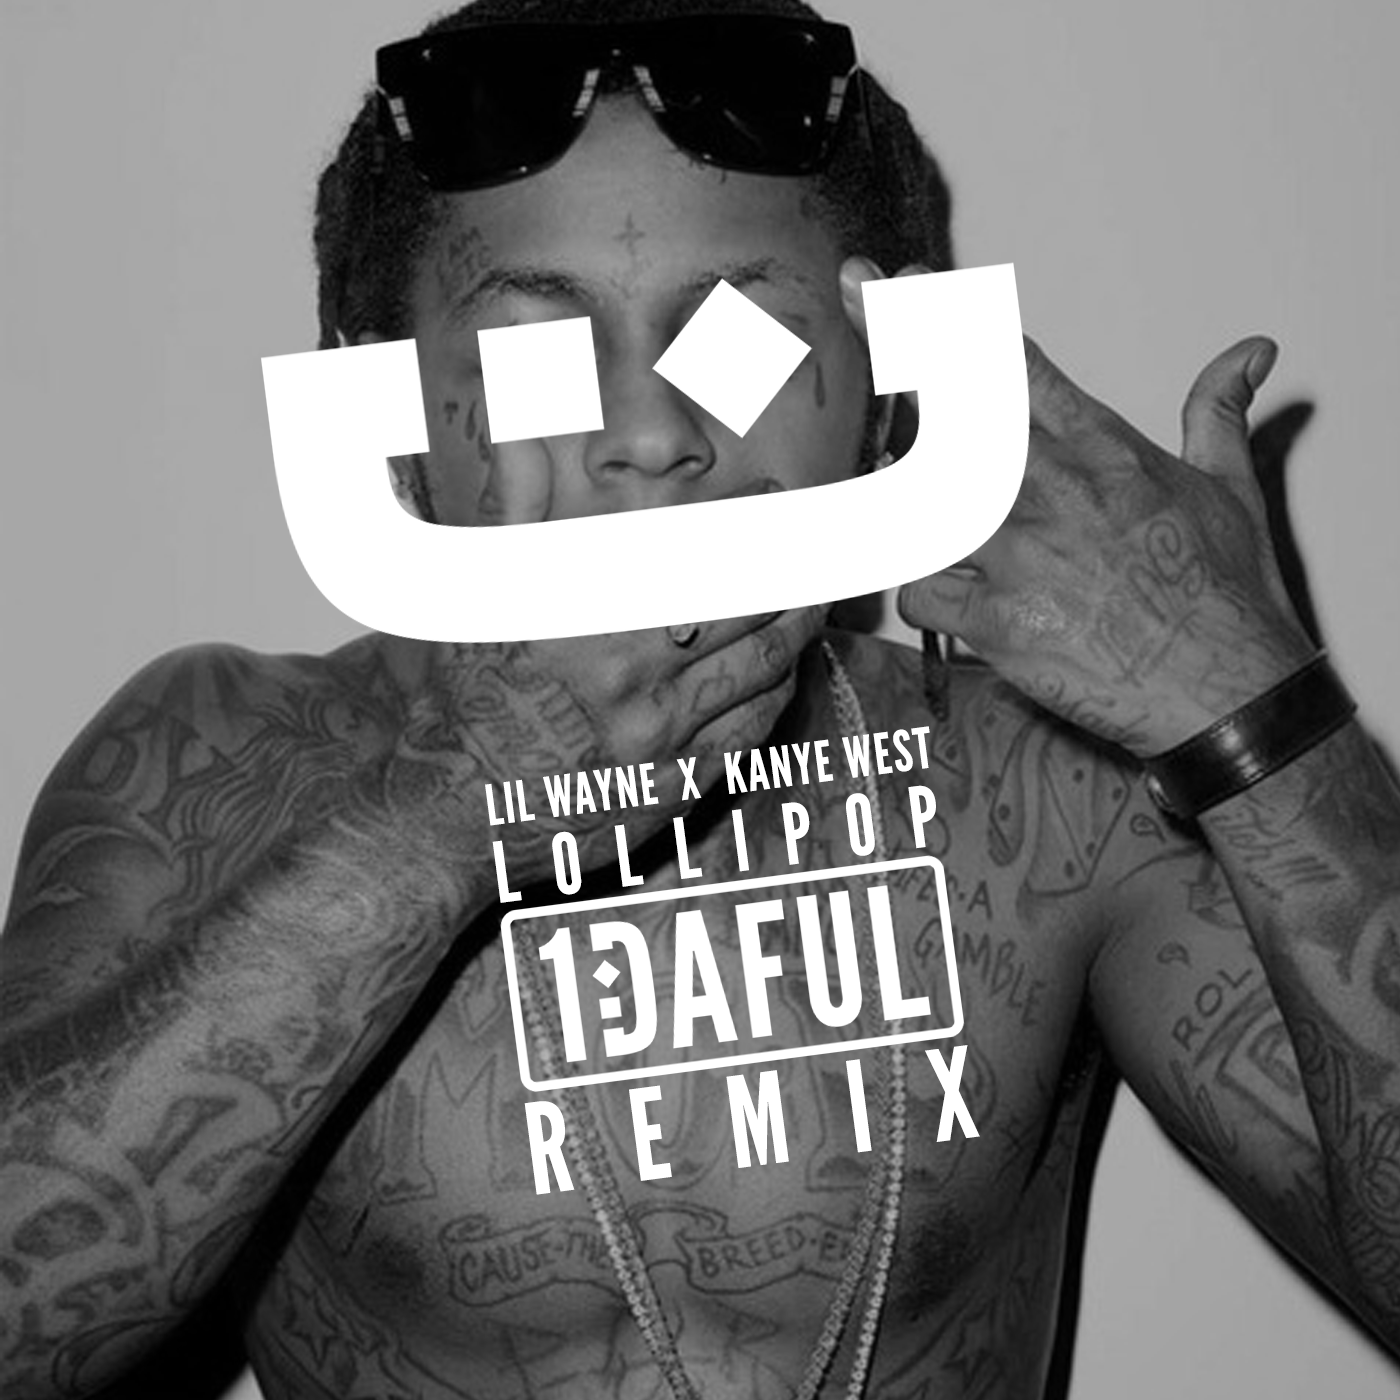 Lollipop (1DAFUL G-house Remix) - Lil Wayne Kanye West artwork